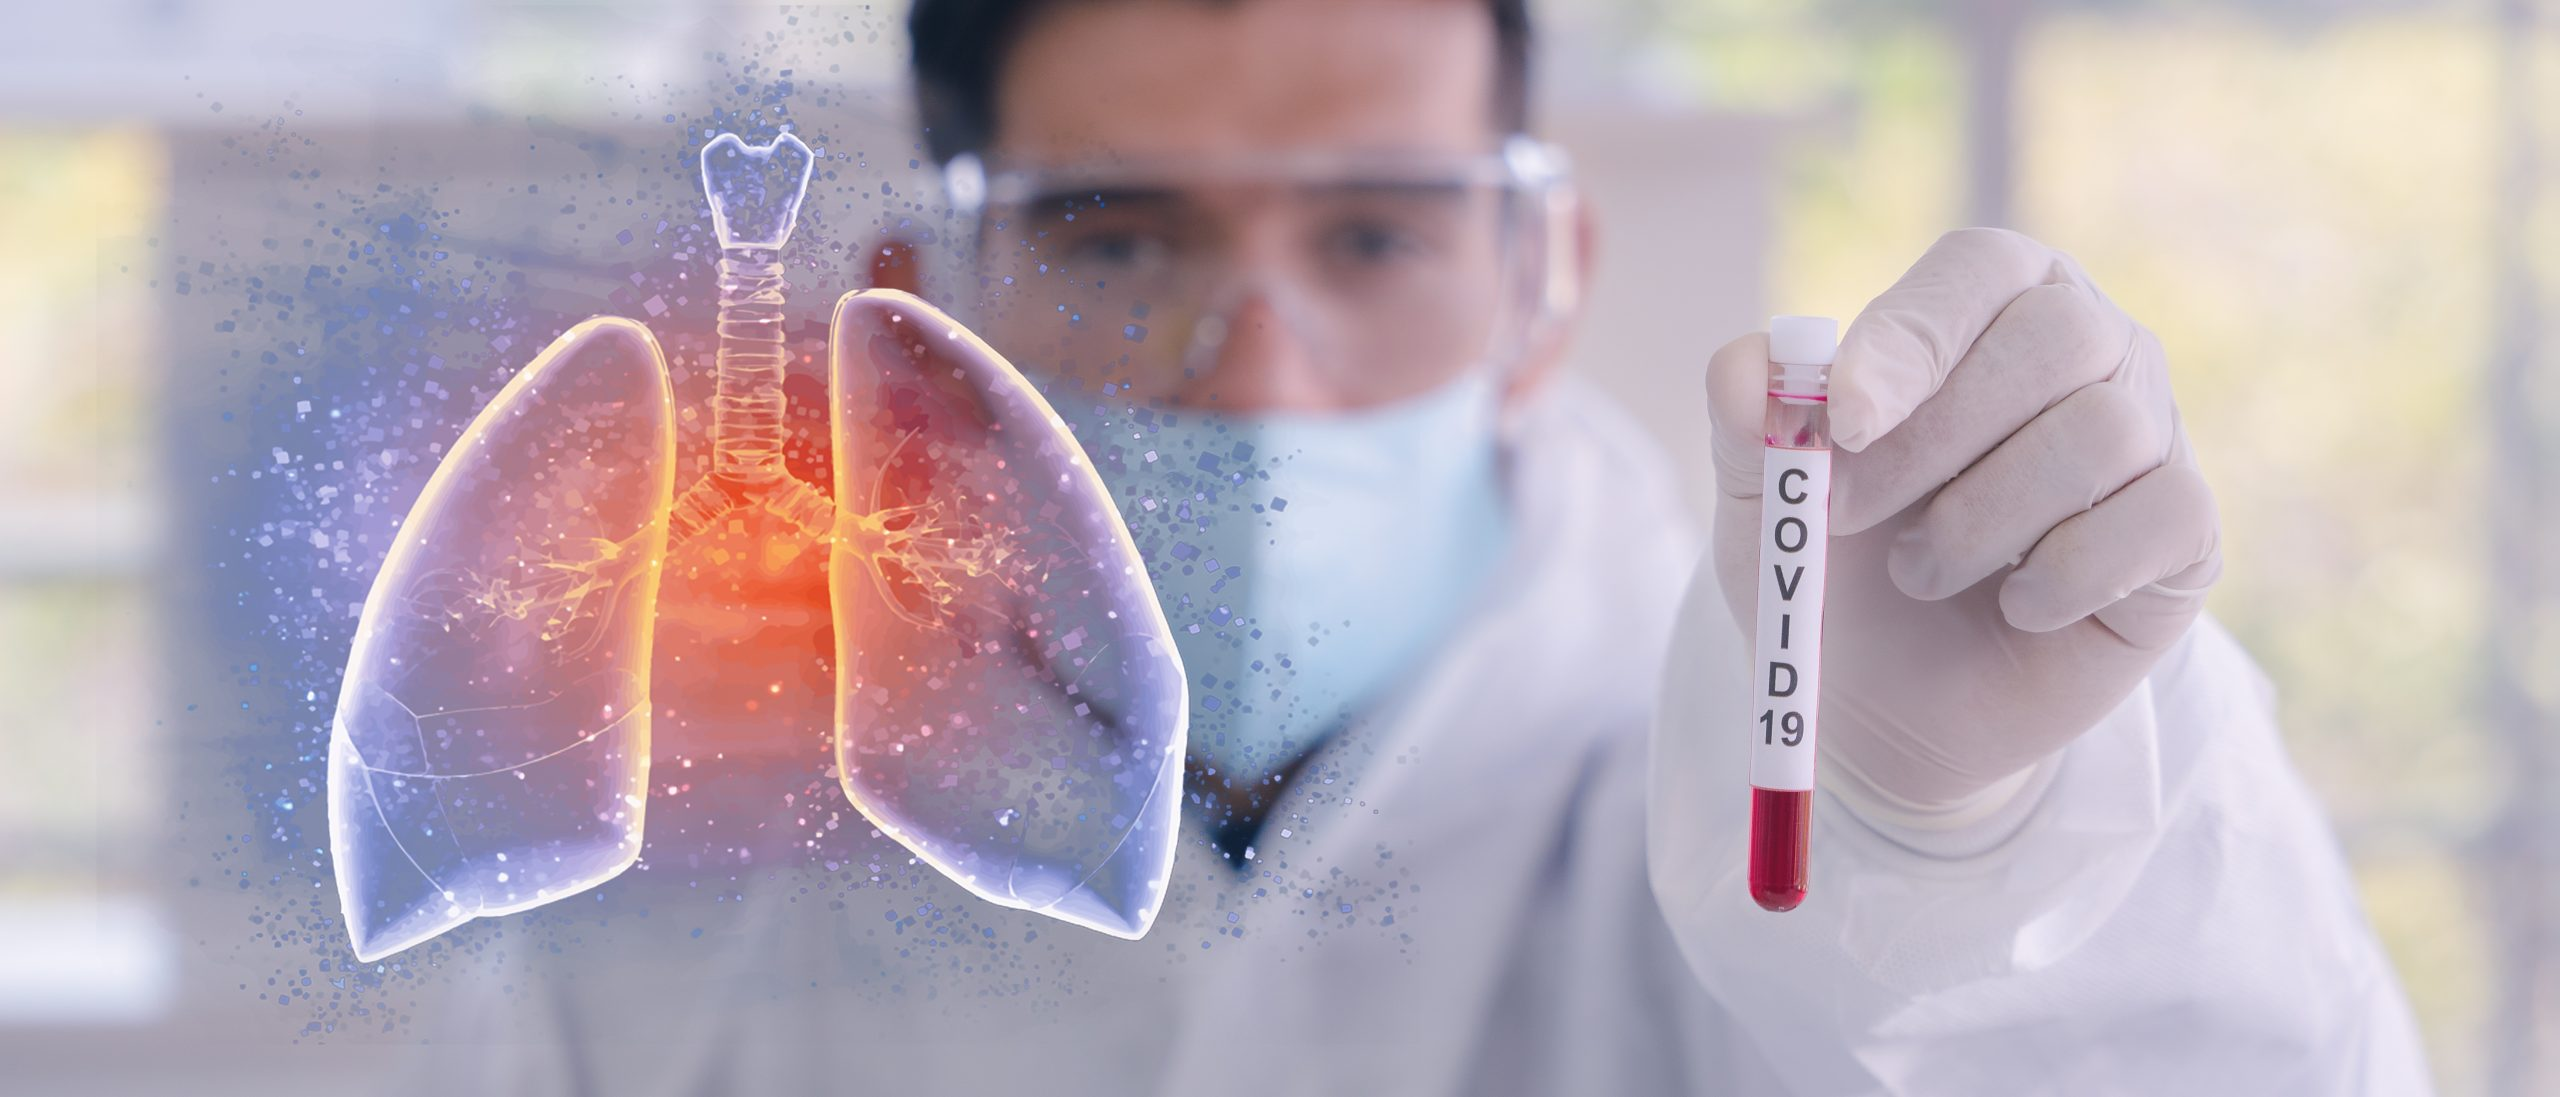 Kaist News Reports on Study that Reveals the Cause Lung Damage due to COVID-19